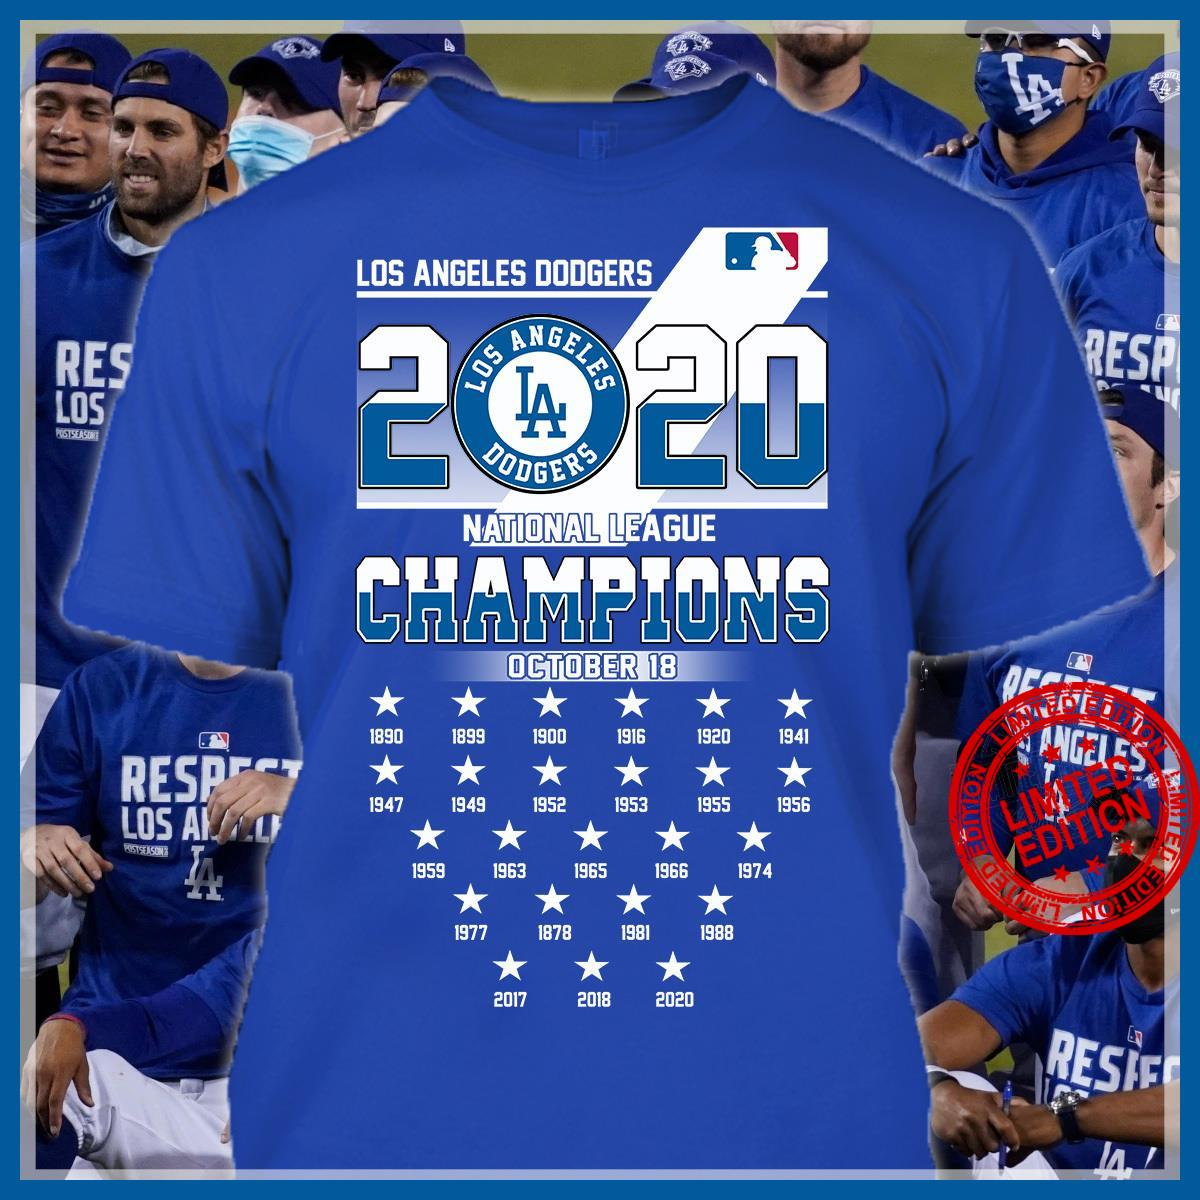 Los Angeles Dodgers 2020 National League Champions October 18 Shirt